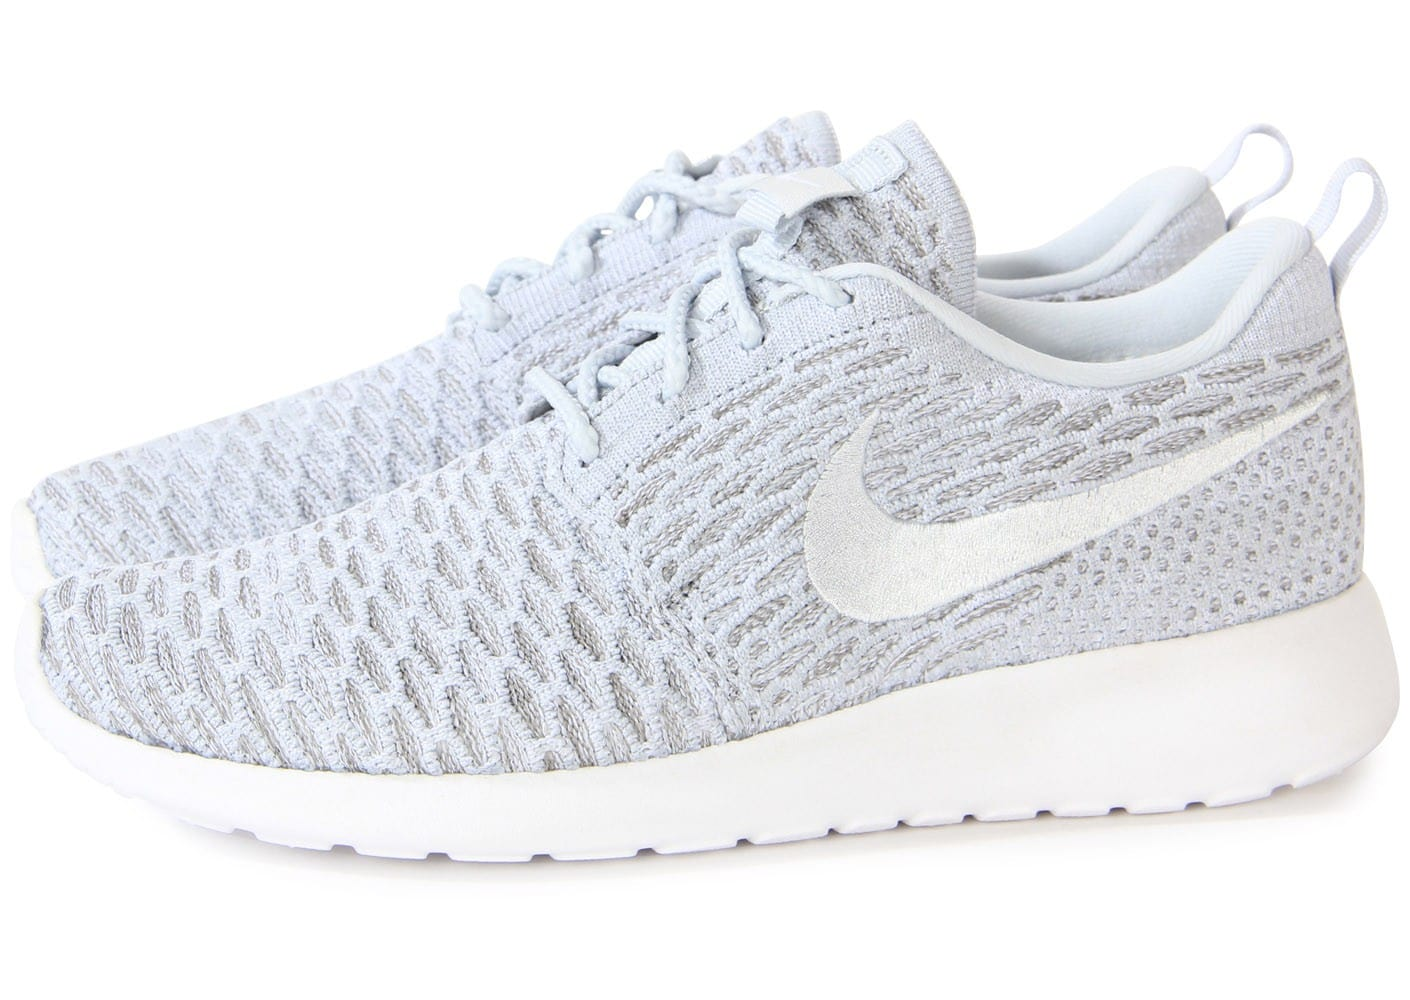 nike roshe run flyknit grise chaussures chaussures chausport. Black Bedroom Furniture Sets. Home Design Ideas